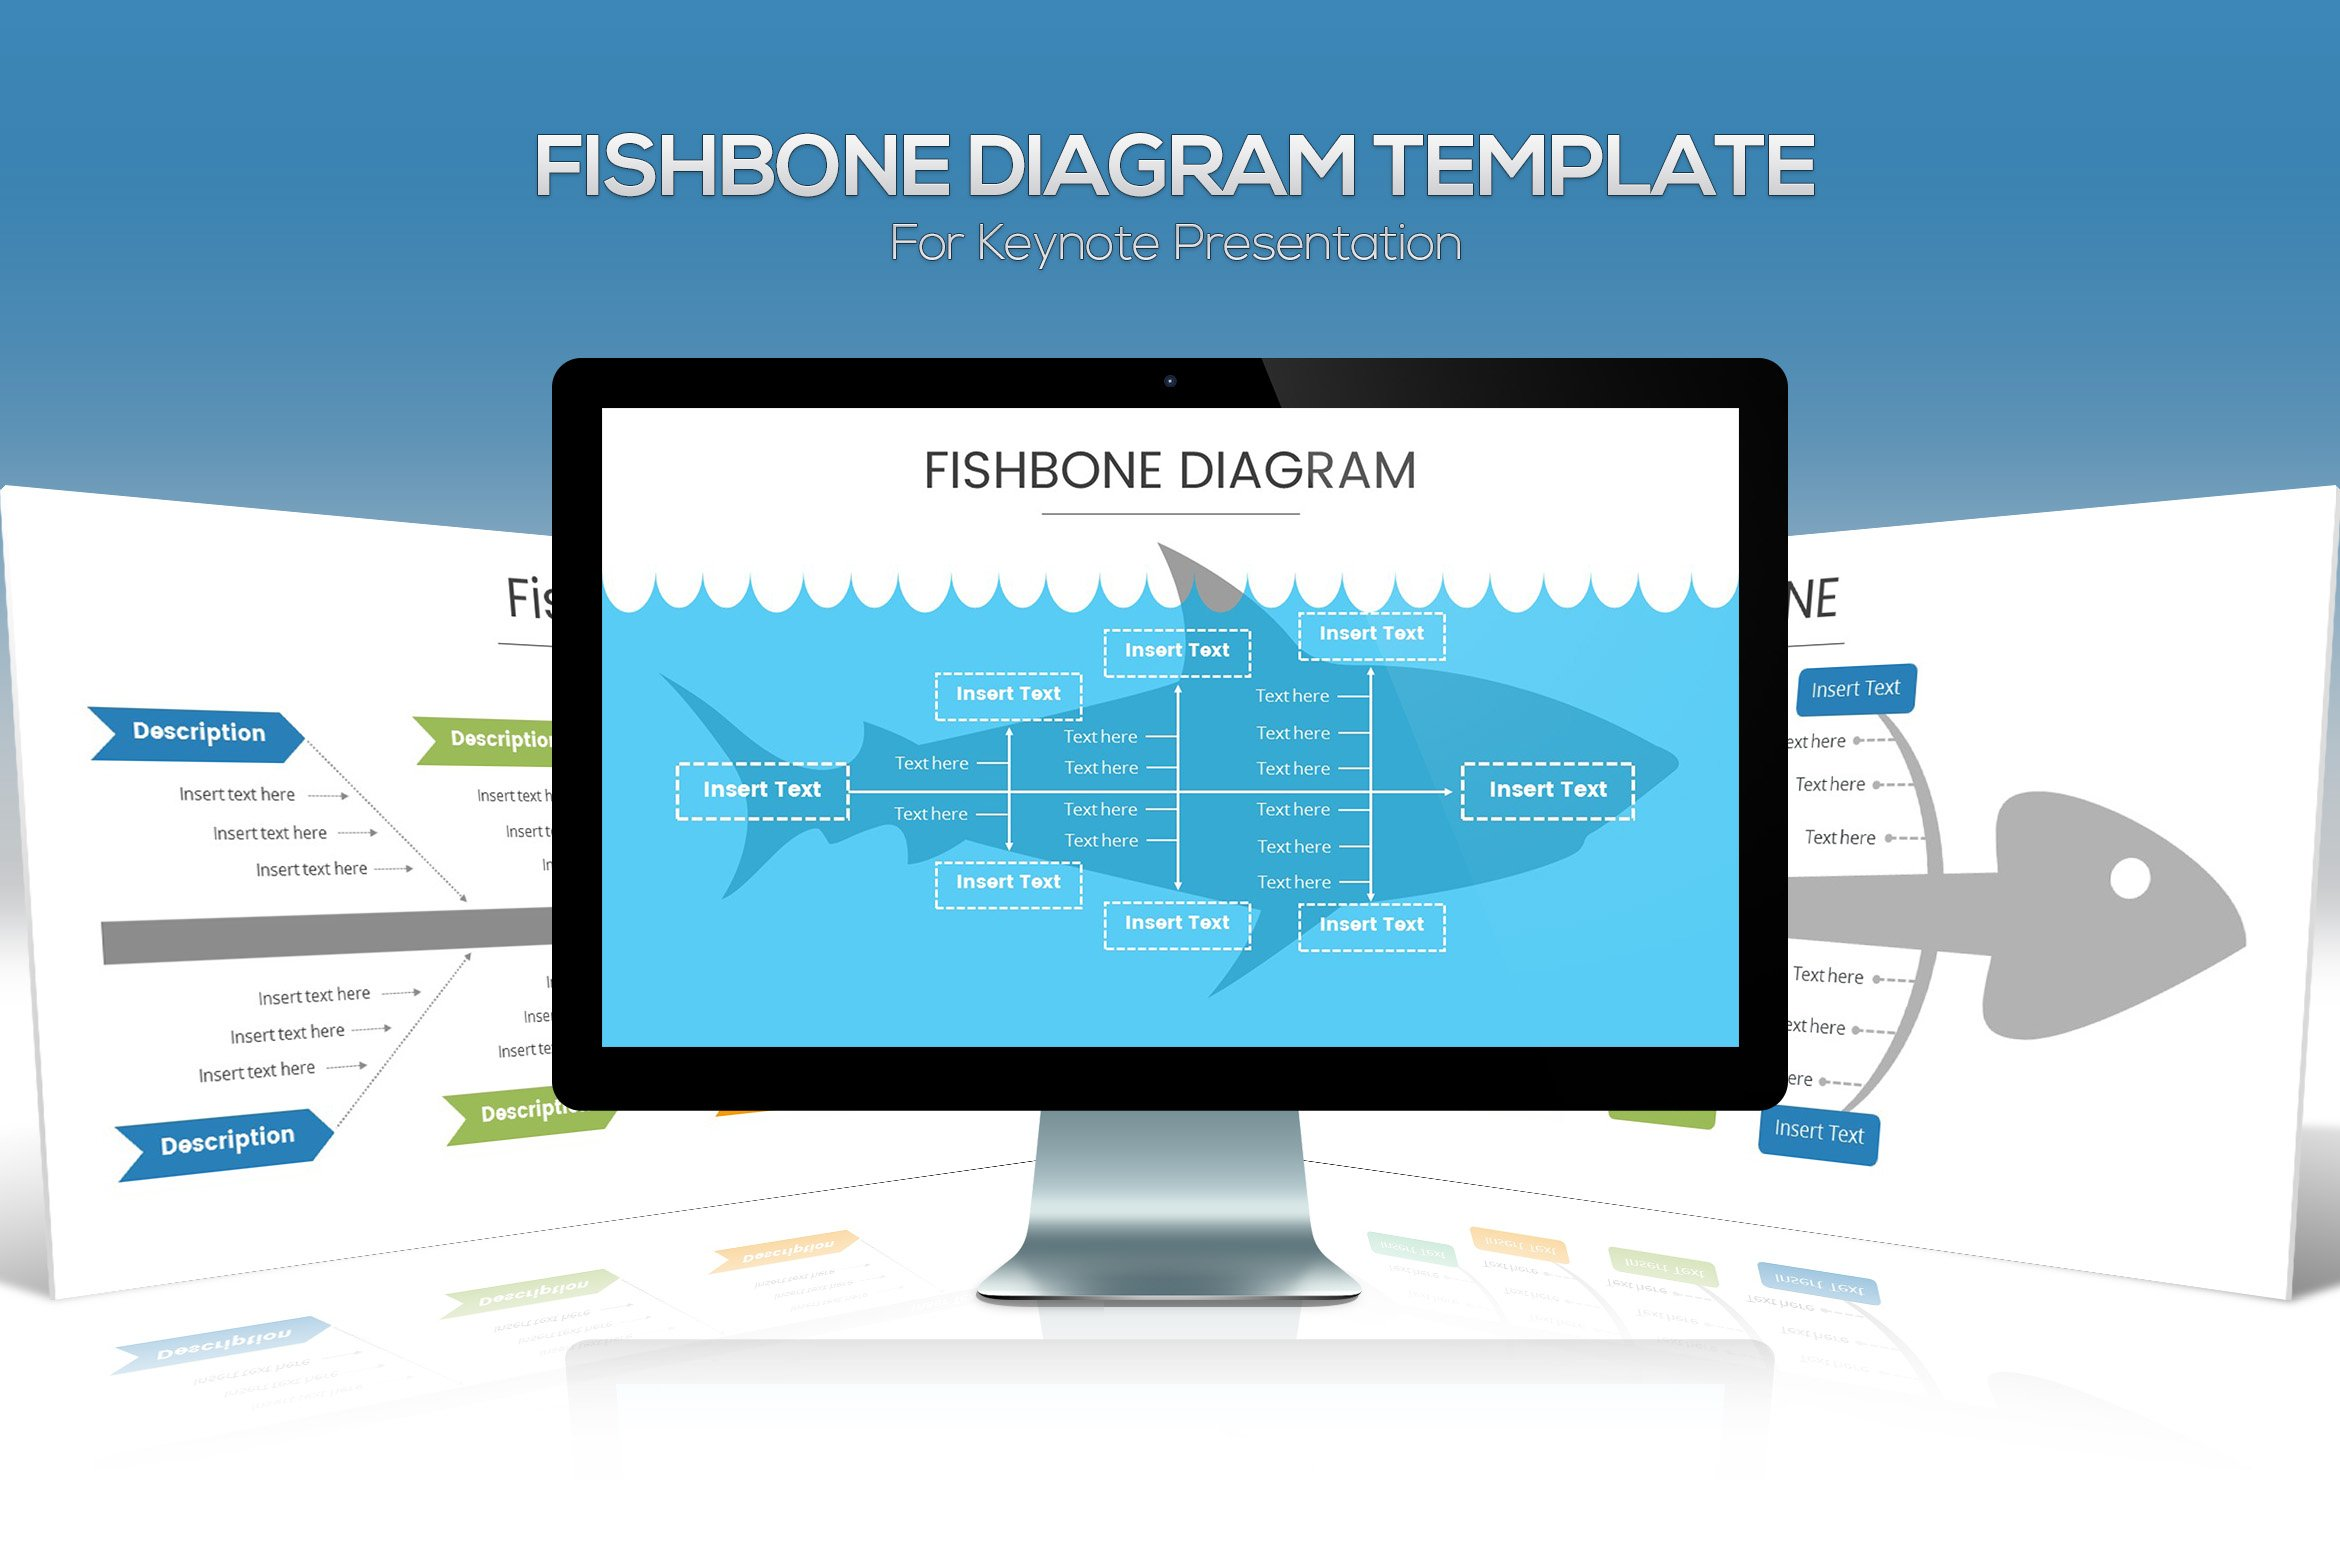 Fishbone diagram keynote template presentation templates fishbone diagram keynote template presentation templates creative market ccuart Choice Image